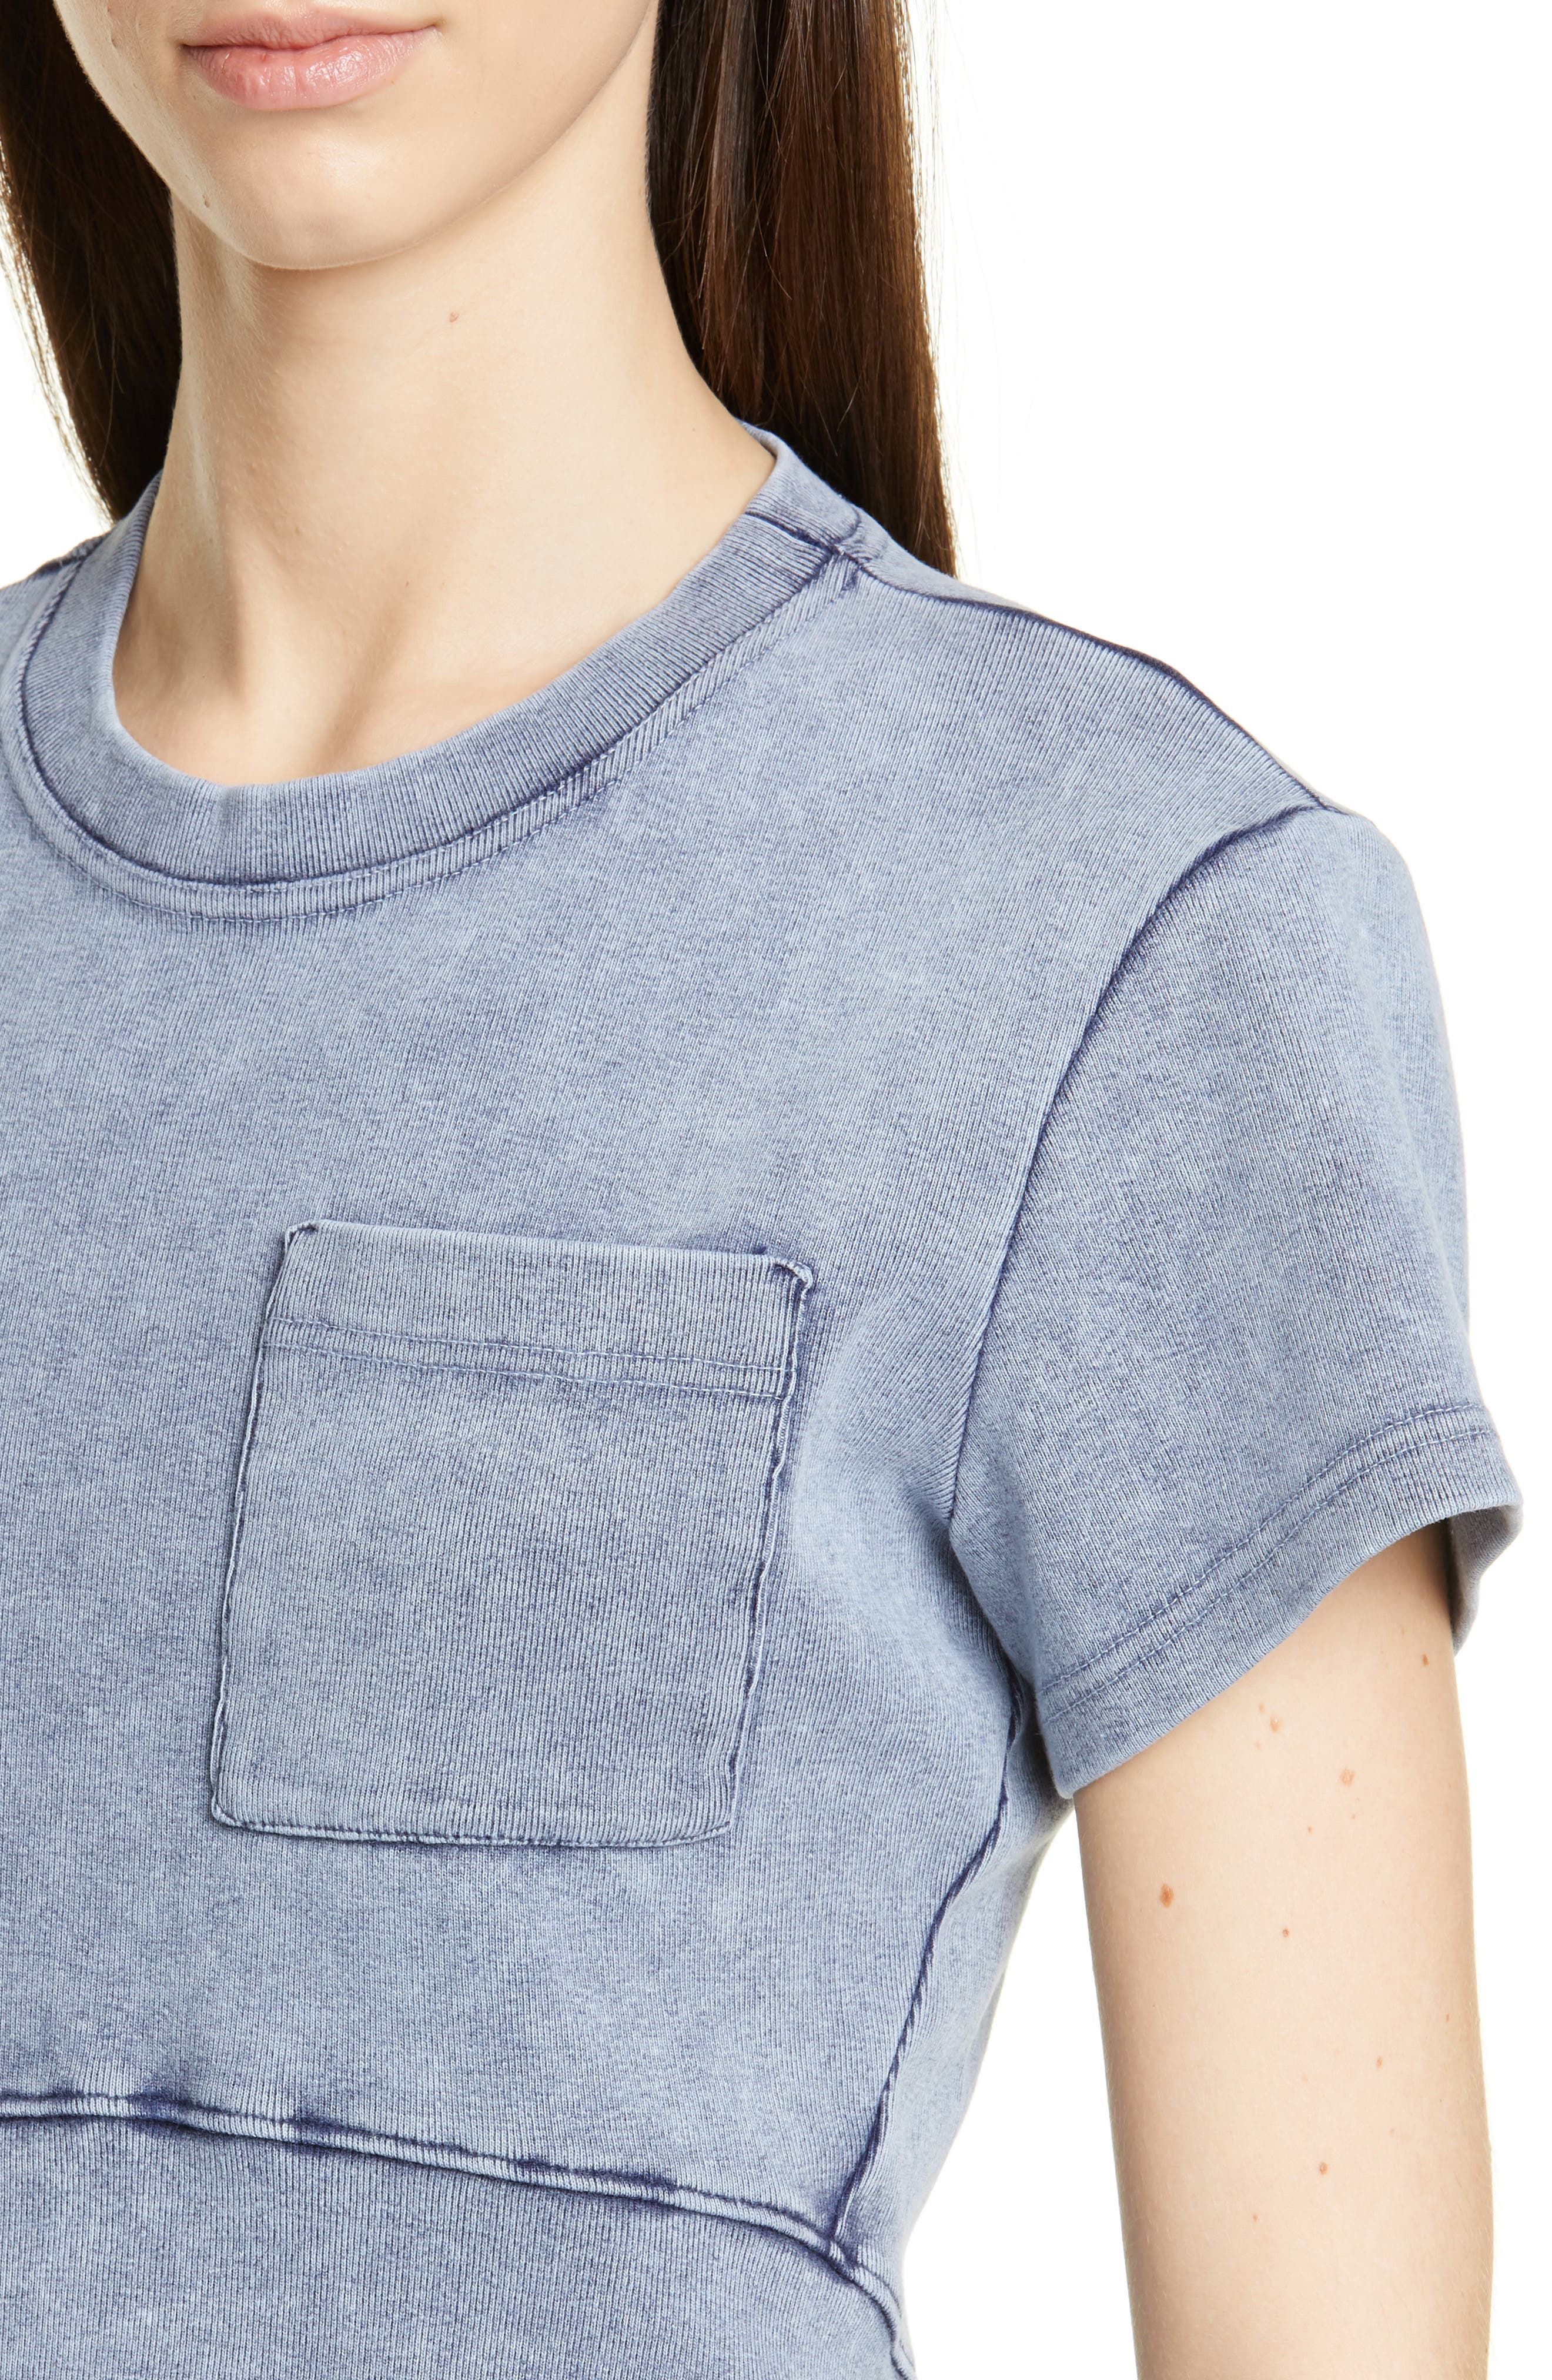 PROENZA SCHOULER, Washed Jersey Top, Alternate thumbnail 4, color, WASHED ACID